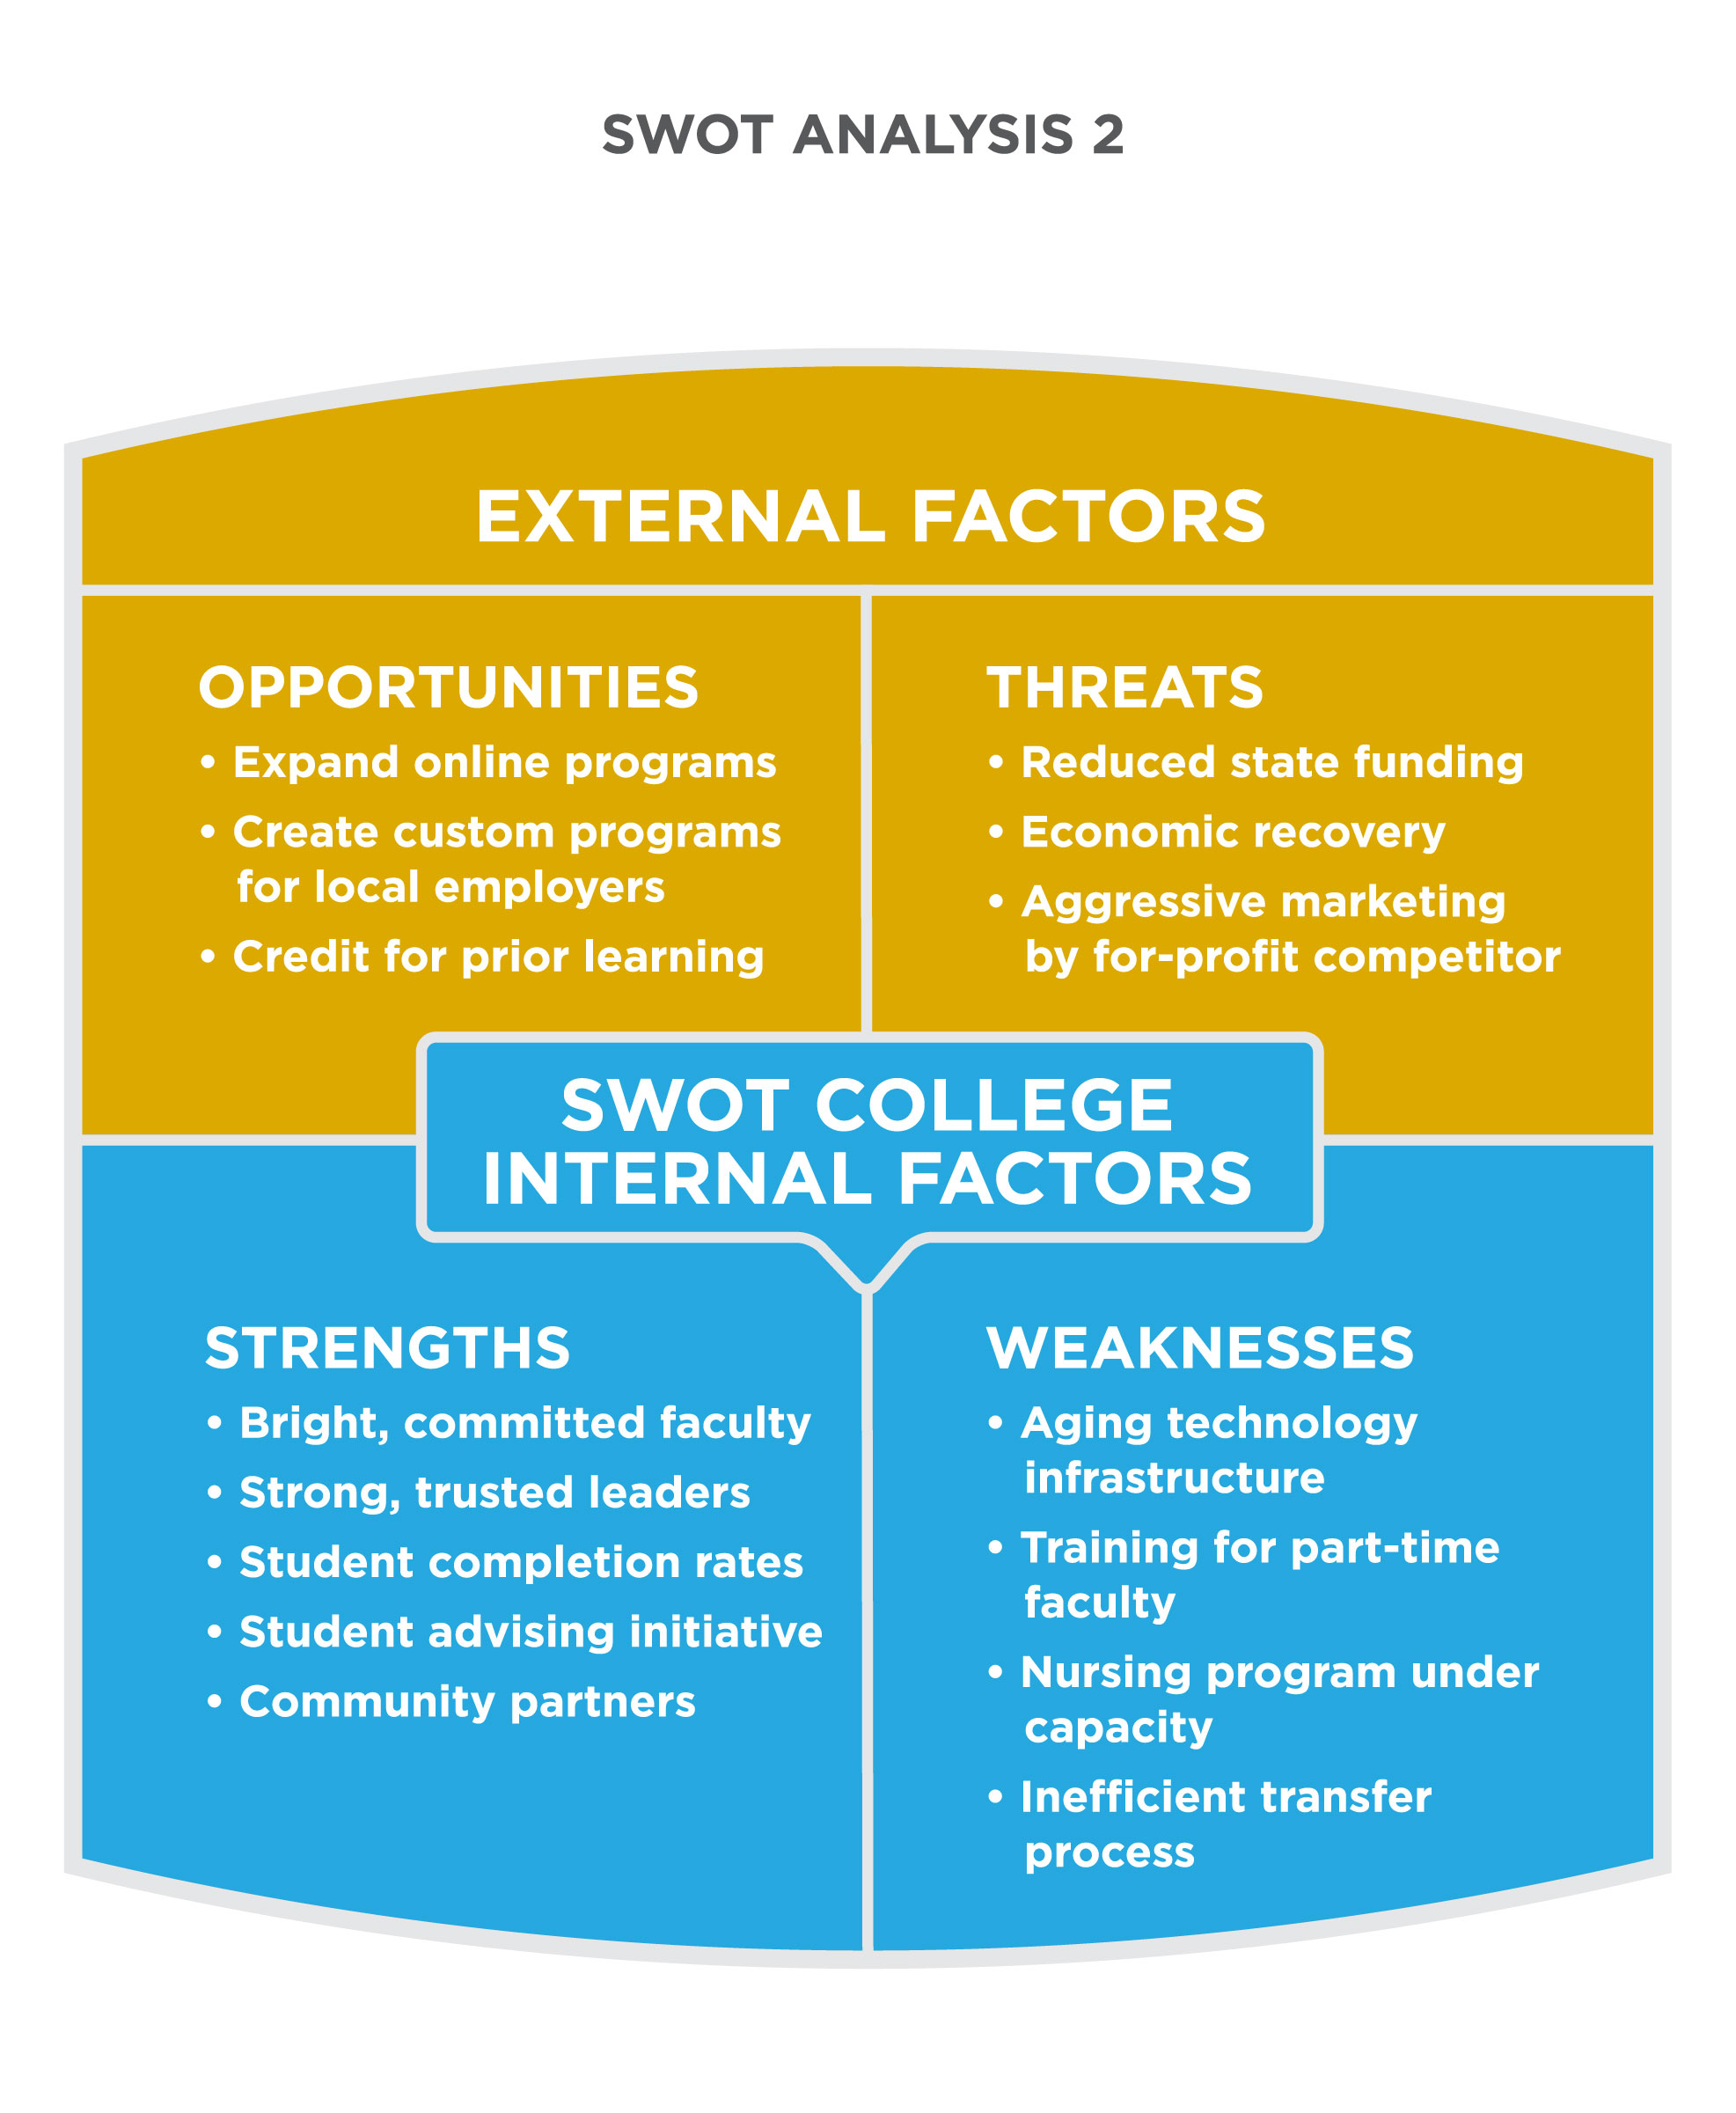 swot ananlysis Conducting a swot analysis of your business will enable you to make a solid  strategic plan for your business's growth here's how to get started.